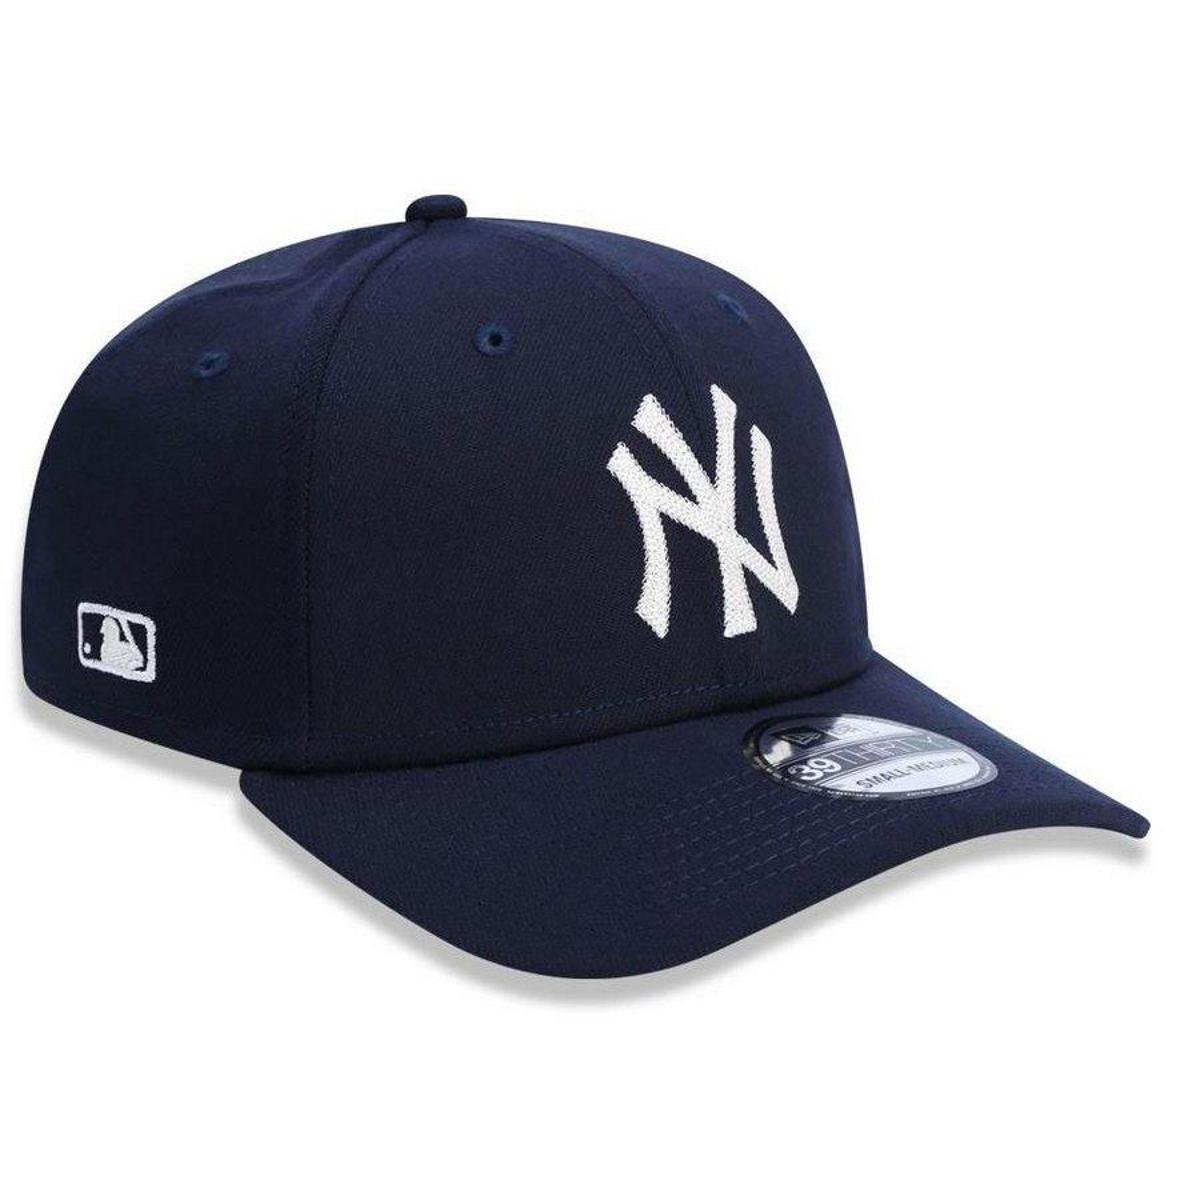 Boné New York Yankees 3930 Chain Stitch New Era - Compre Agora ... 0c19e7df4df